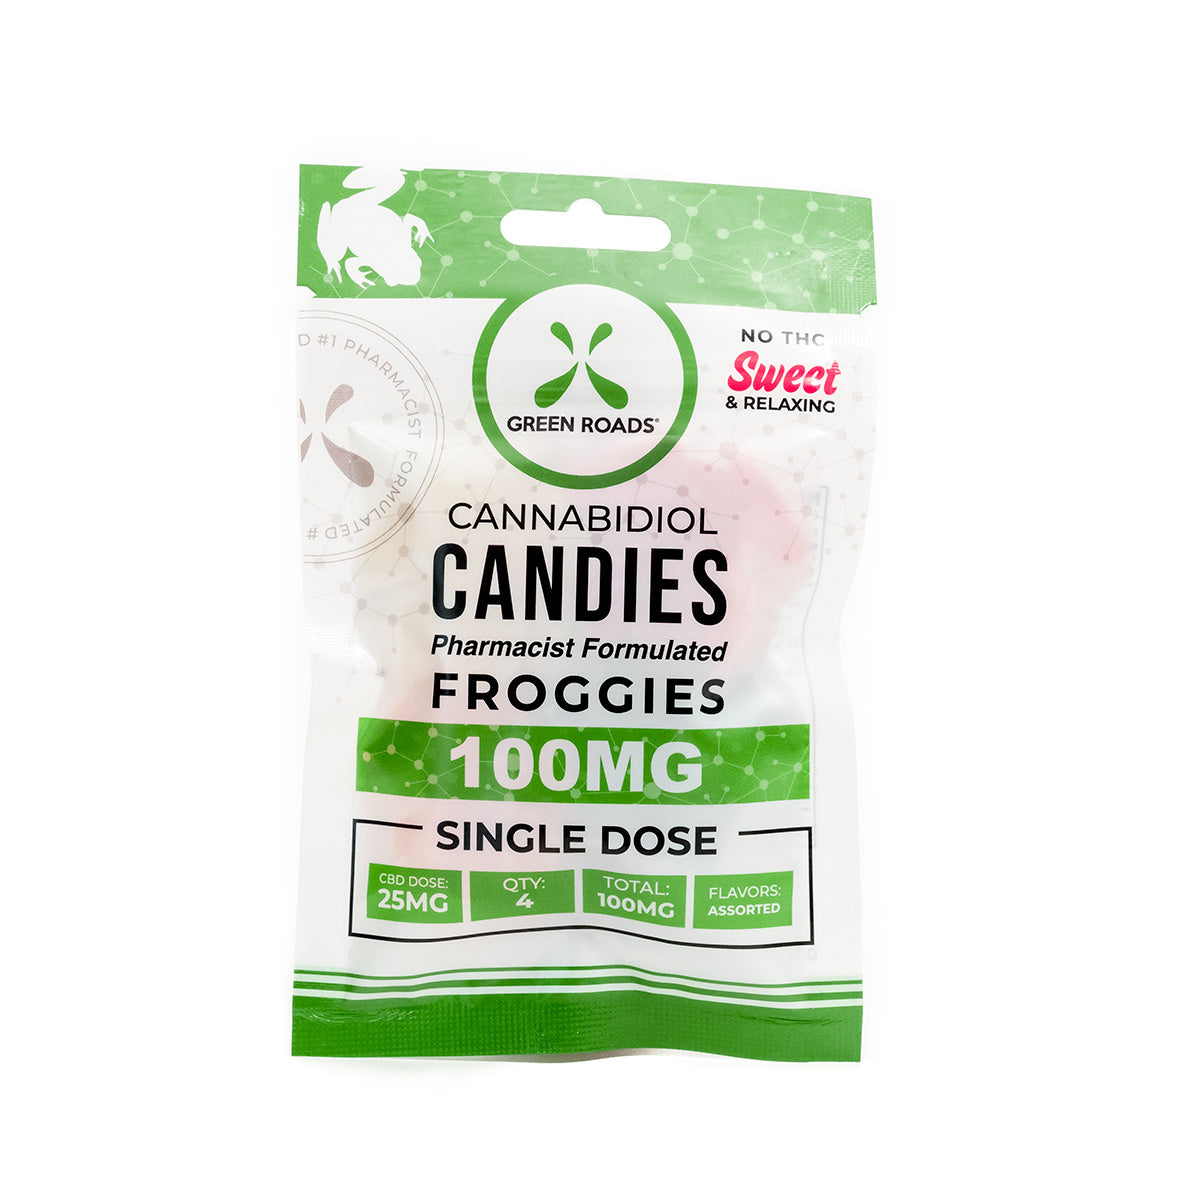 Green Roads Cannabidiol Candies Froggies 100mg